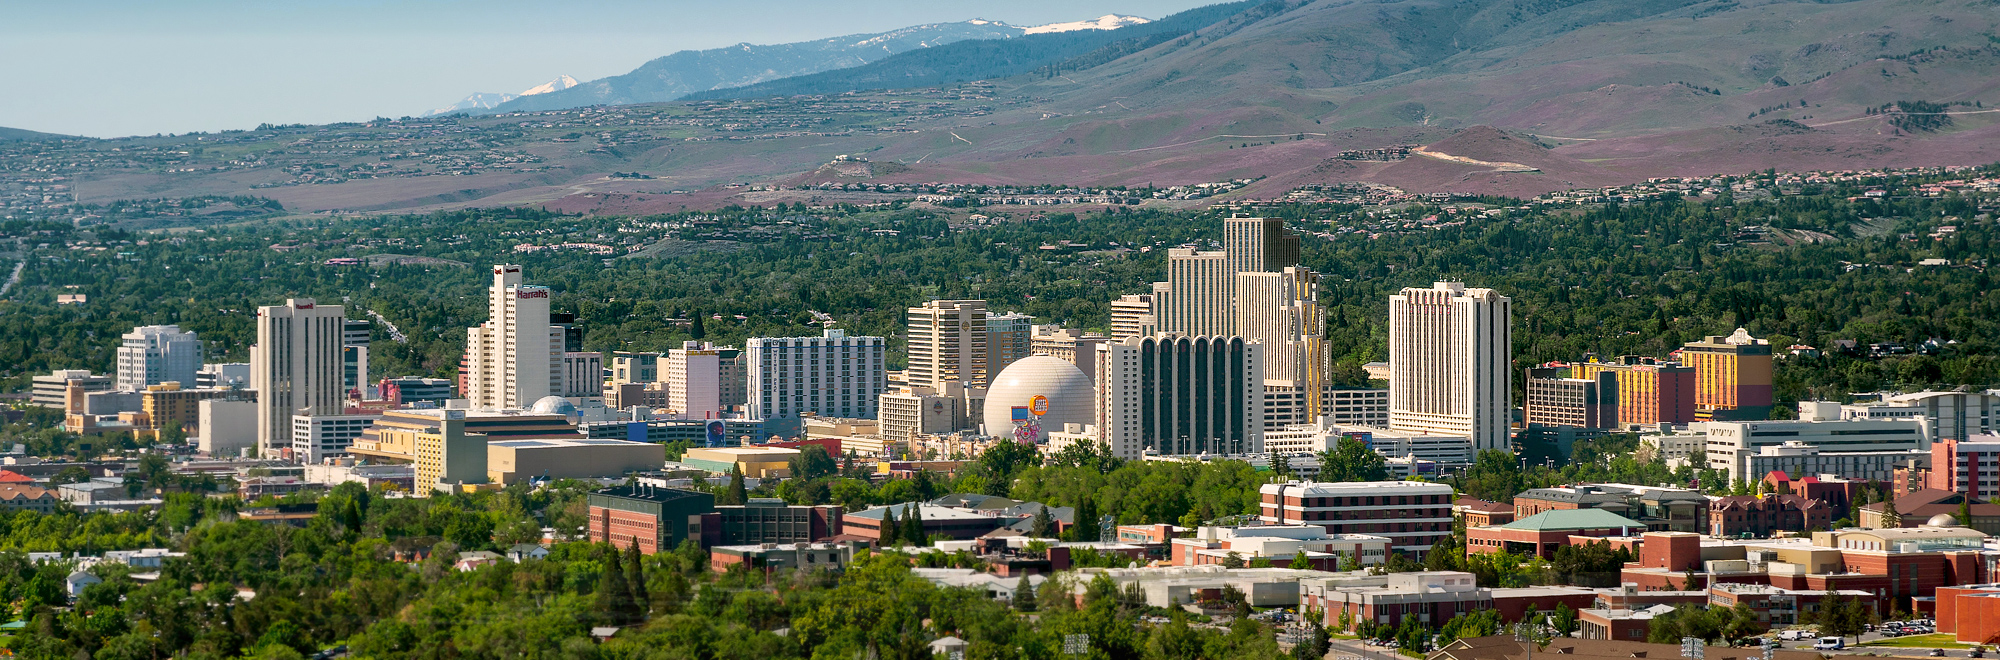 City of Reno Nevada